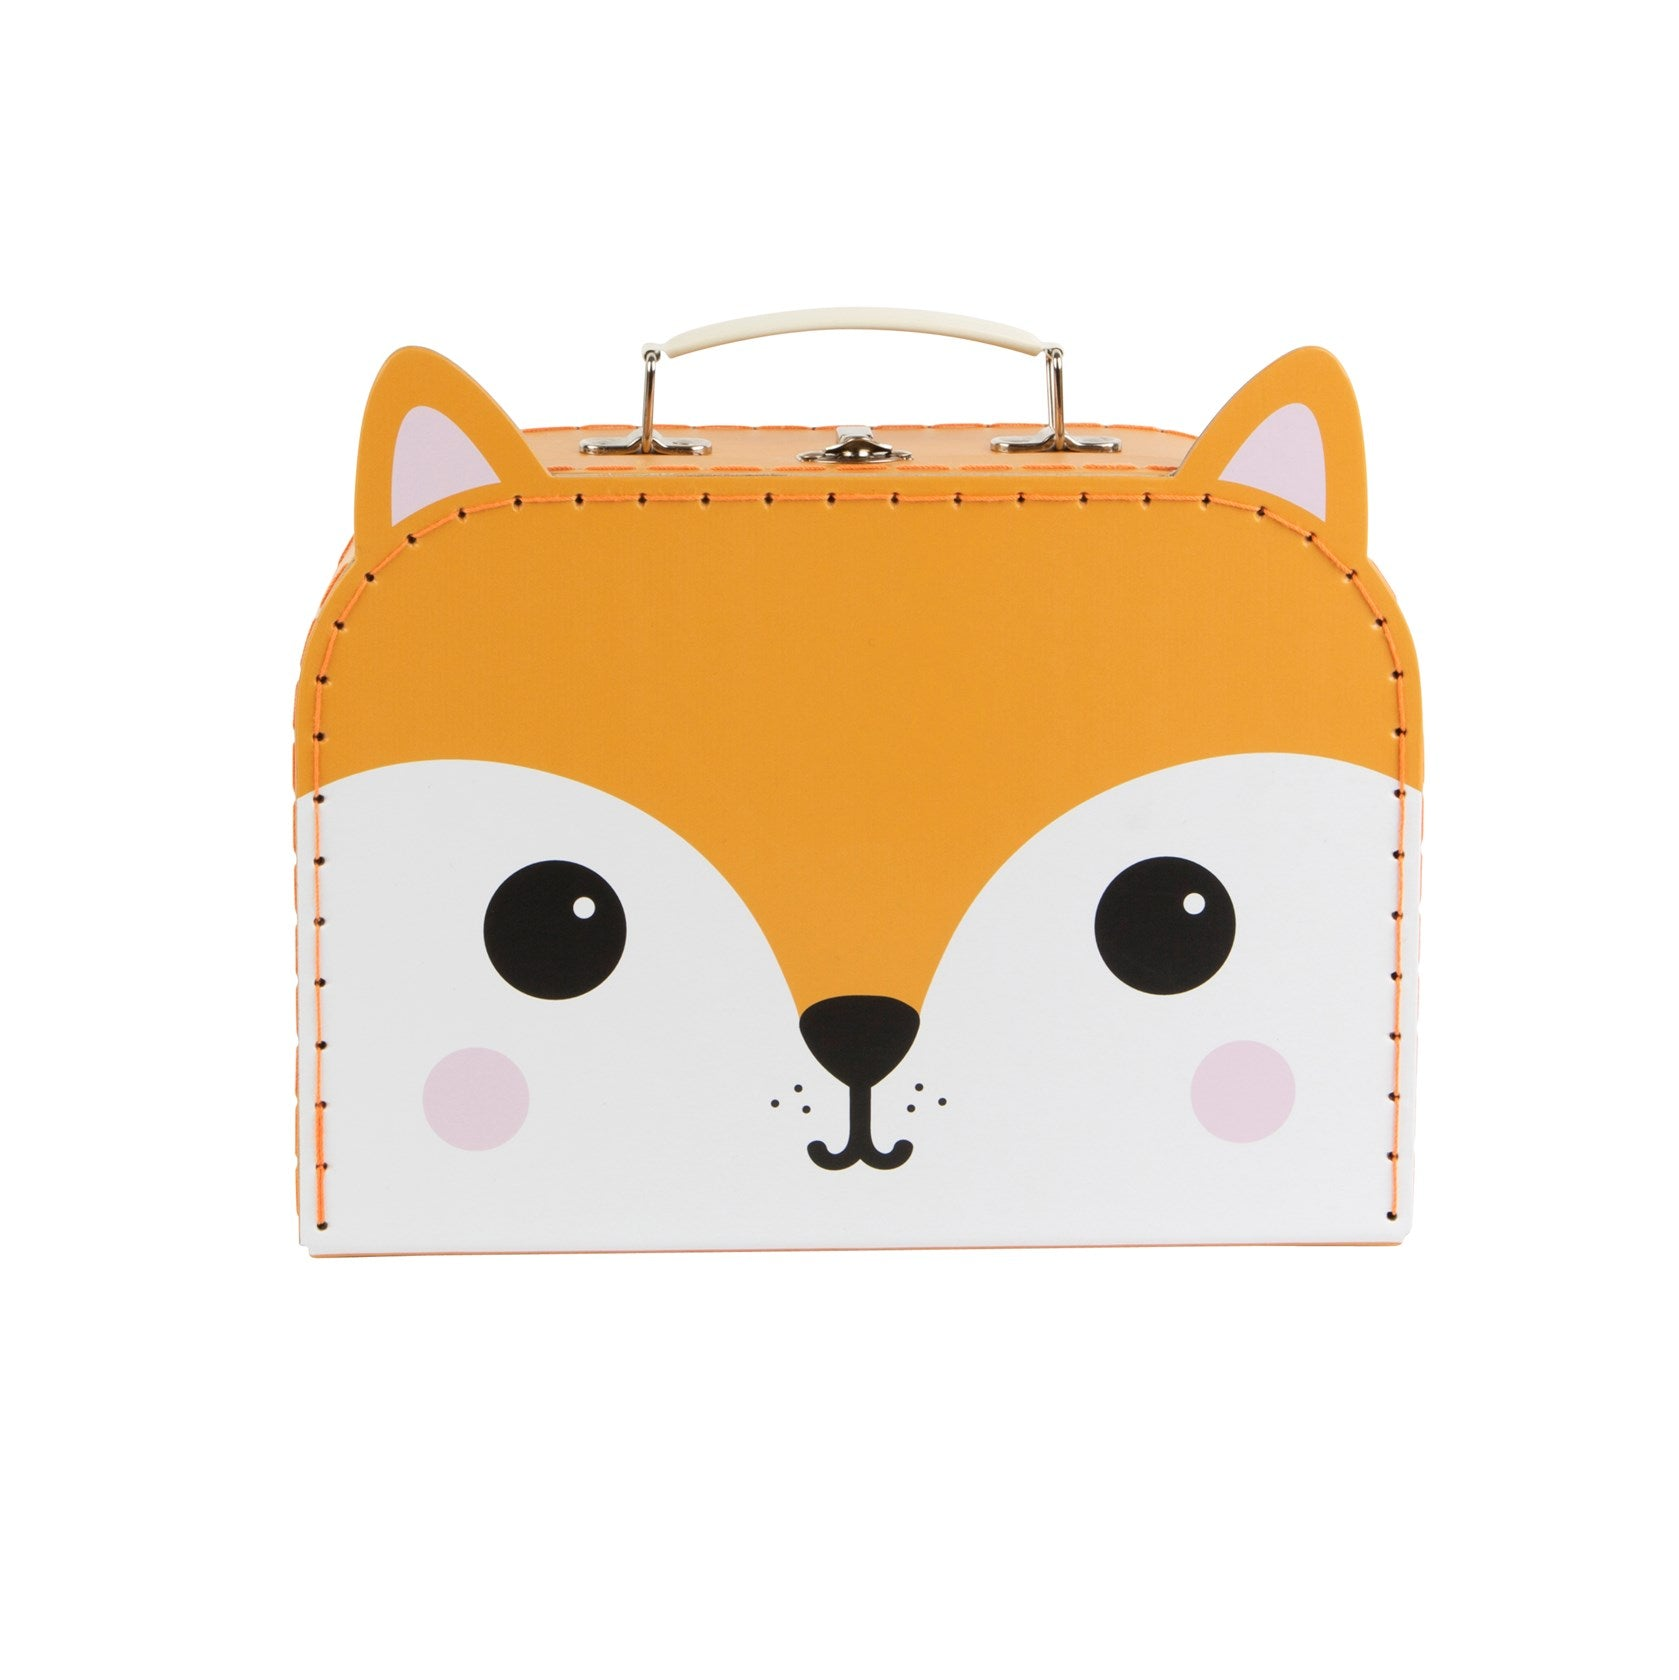 Hiro Fox Kawaii Friends Suitcases - Single Medium - Wild Atlantic Living